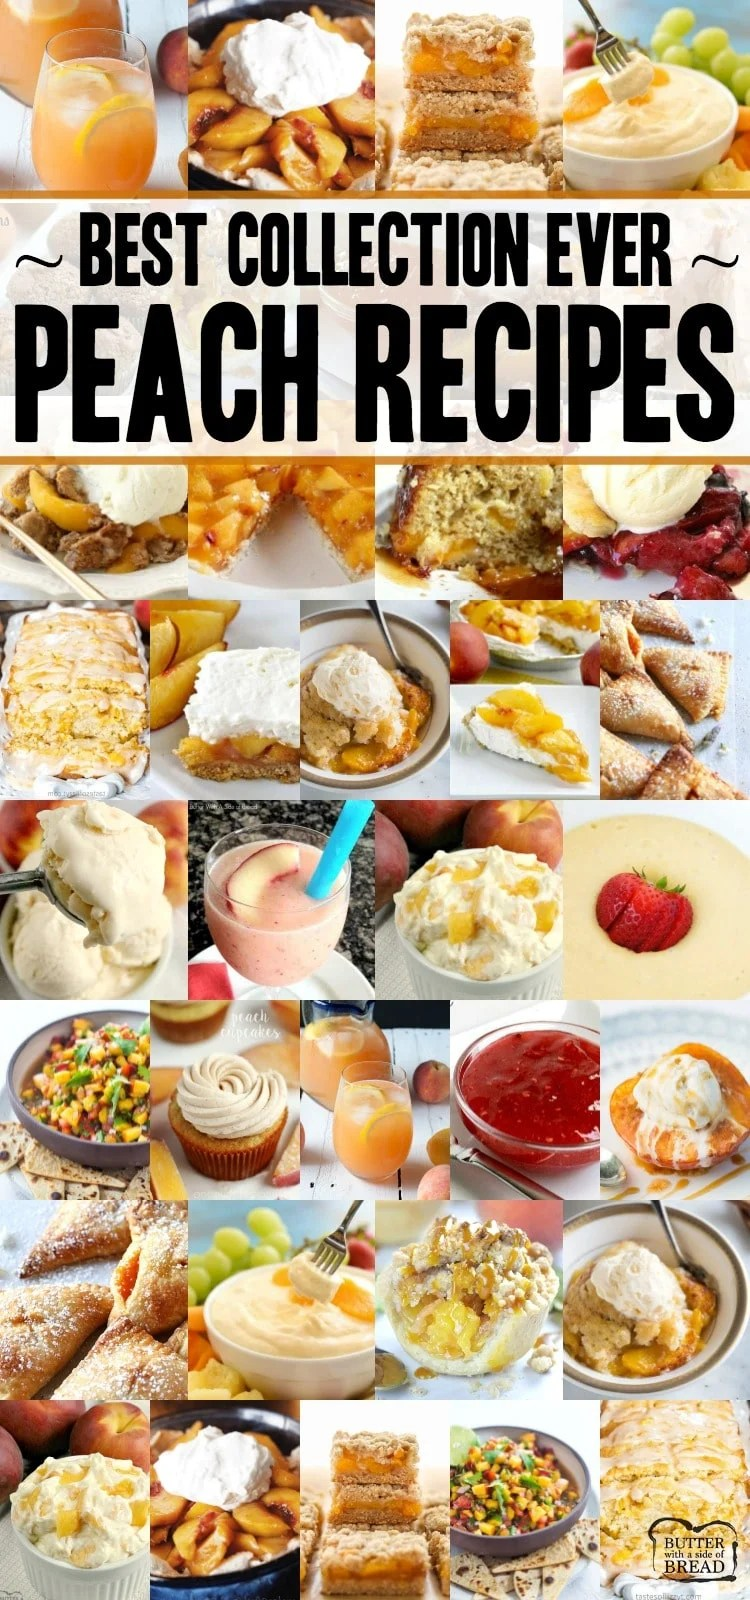 The VERY best peach recipes ever! Everything from Peach cobbler and peach crisp to peach pie and peaches & cream salad! Here's what you should make with those fresh peaches. #peach #recipes #peaches #peachcobbler #peachpie #freshpeaches from BUTTER WITH A SIDE OF BREAD